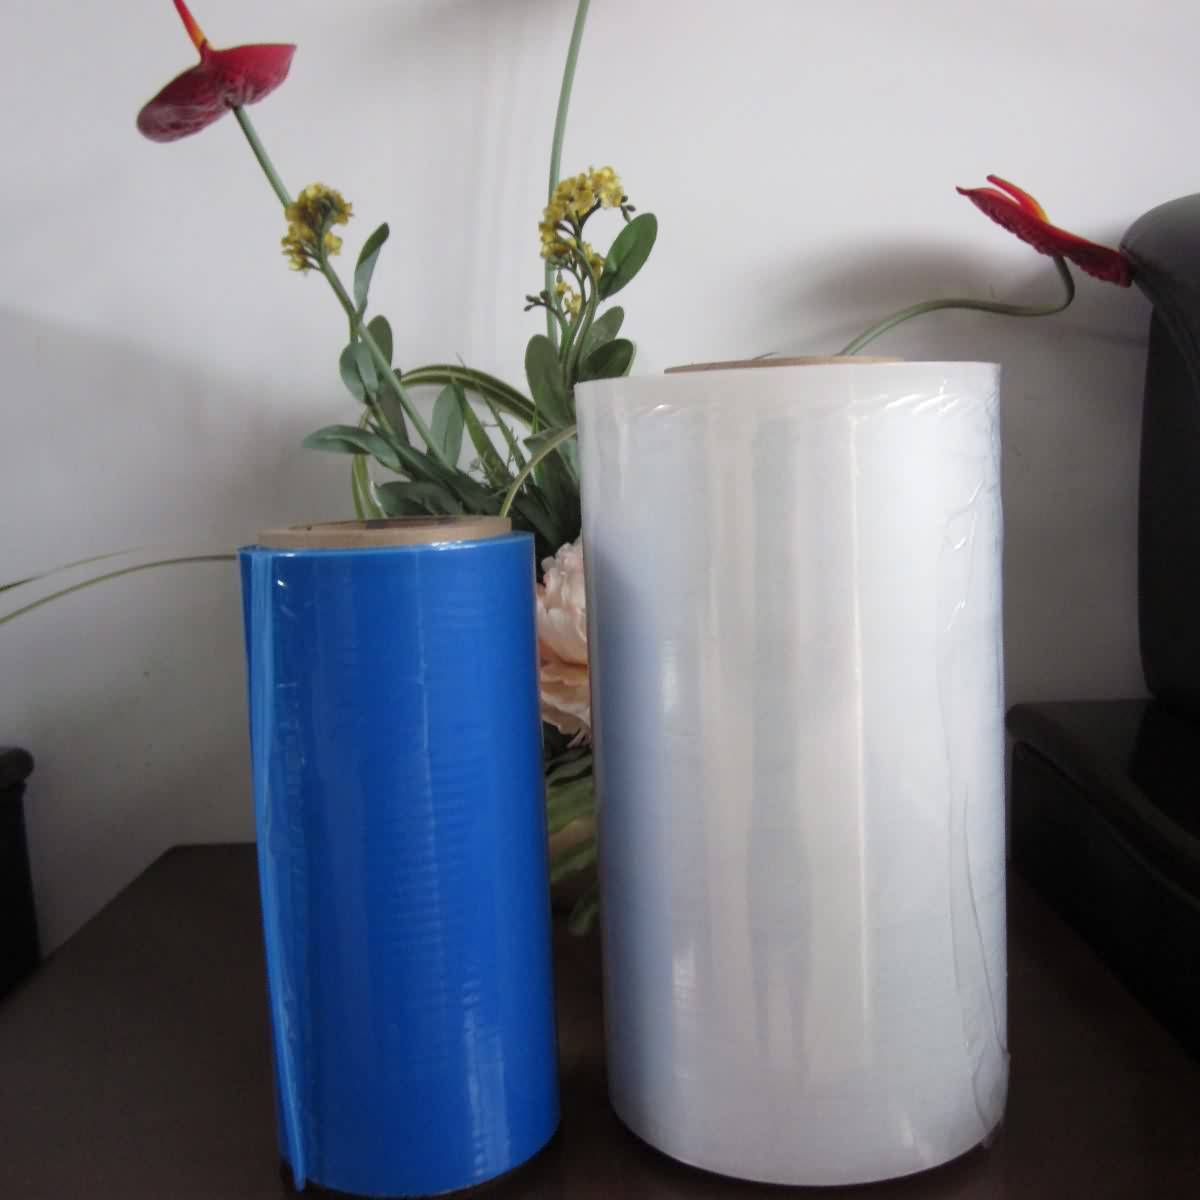 Factory Promotional Vci Stretch Film Vci Stretch Wrap Anti-corrosive Stretch Film